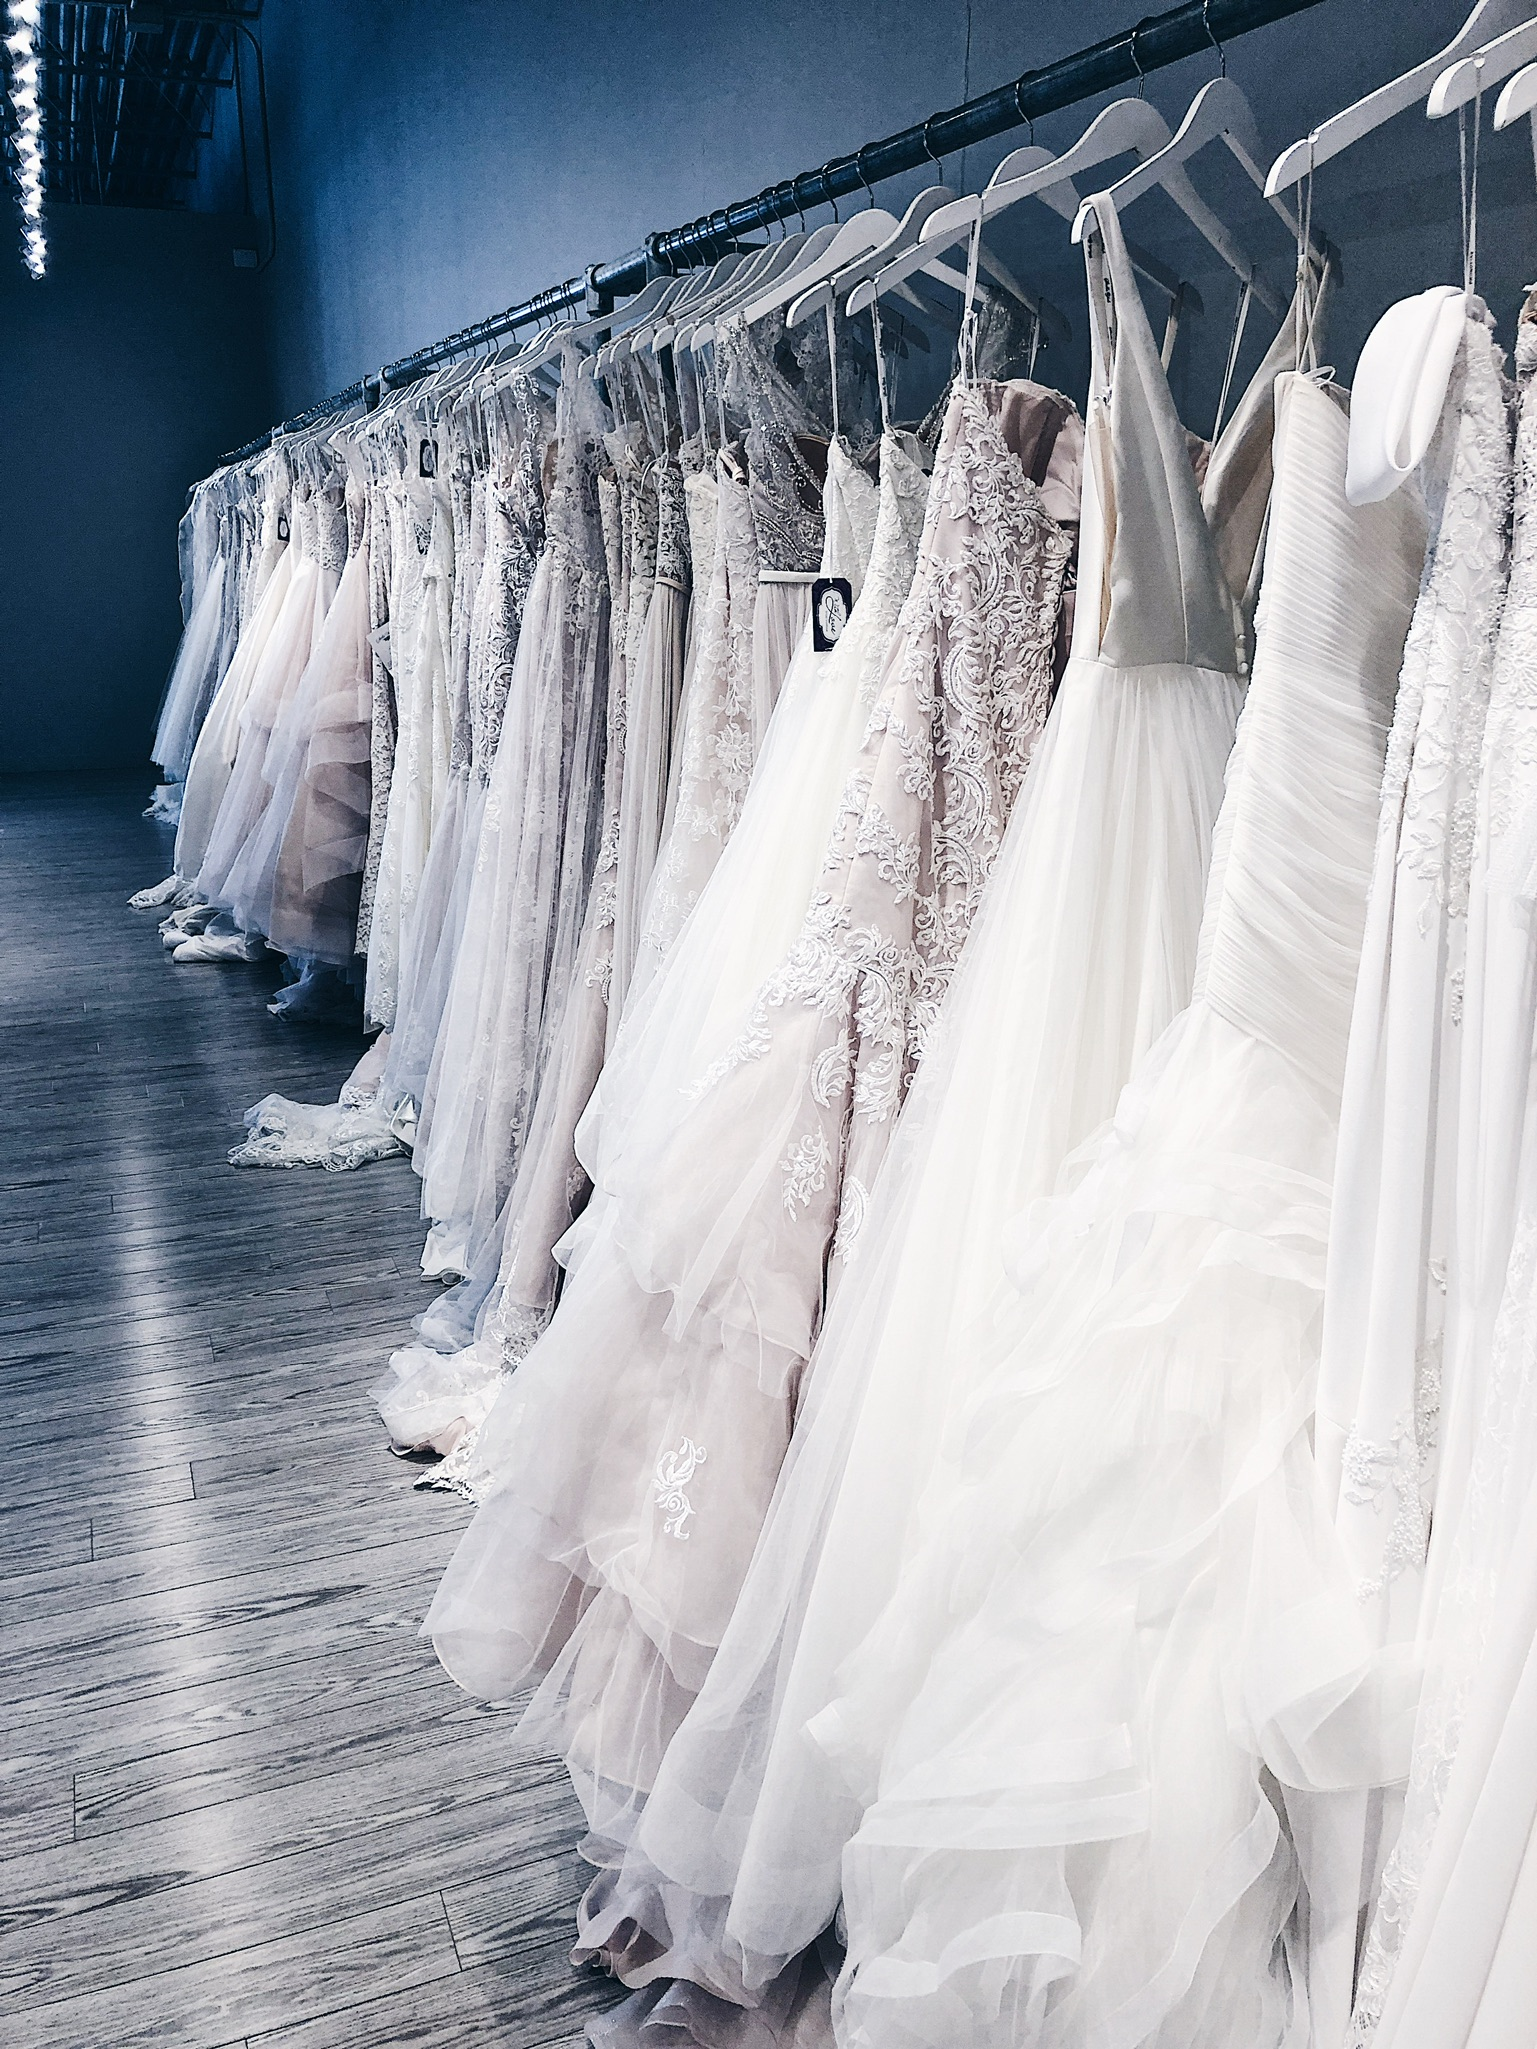 with love bridal showroom, white satin bridal Ottawa wedding dresses on racks